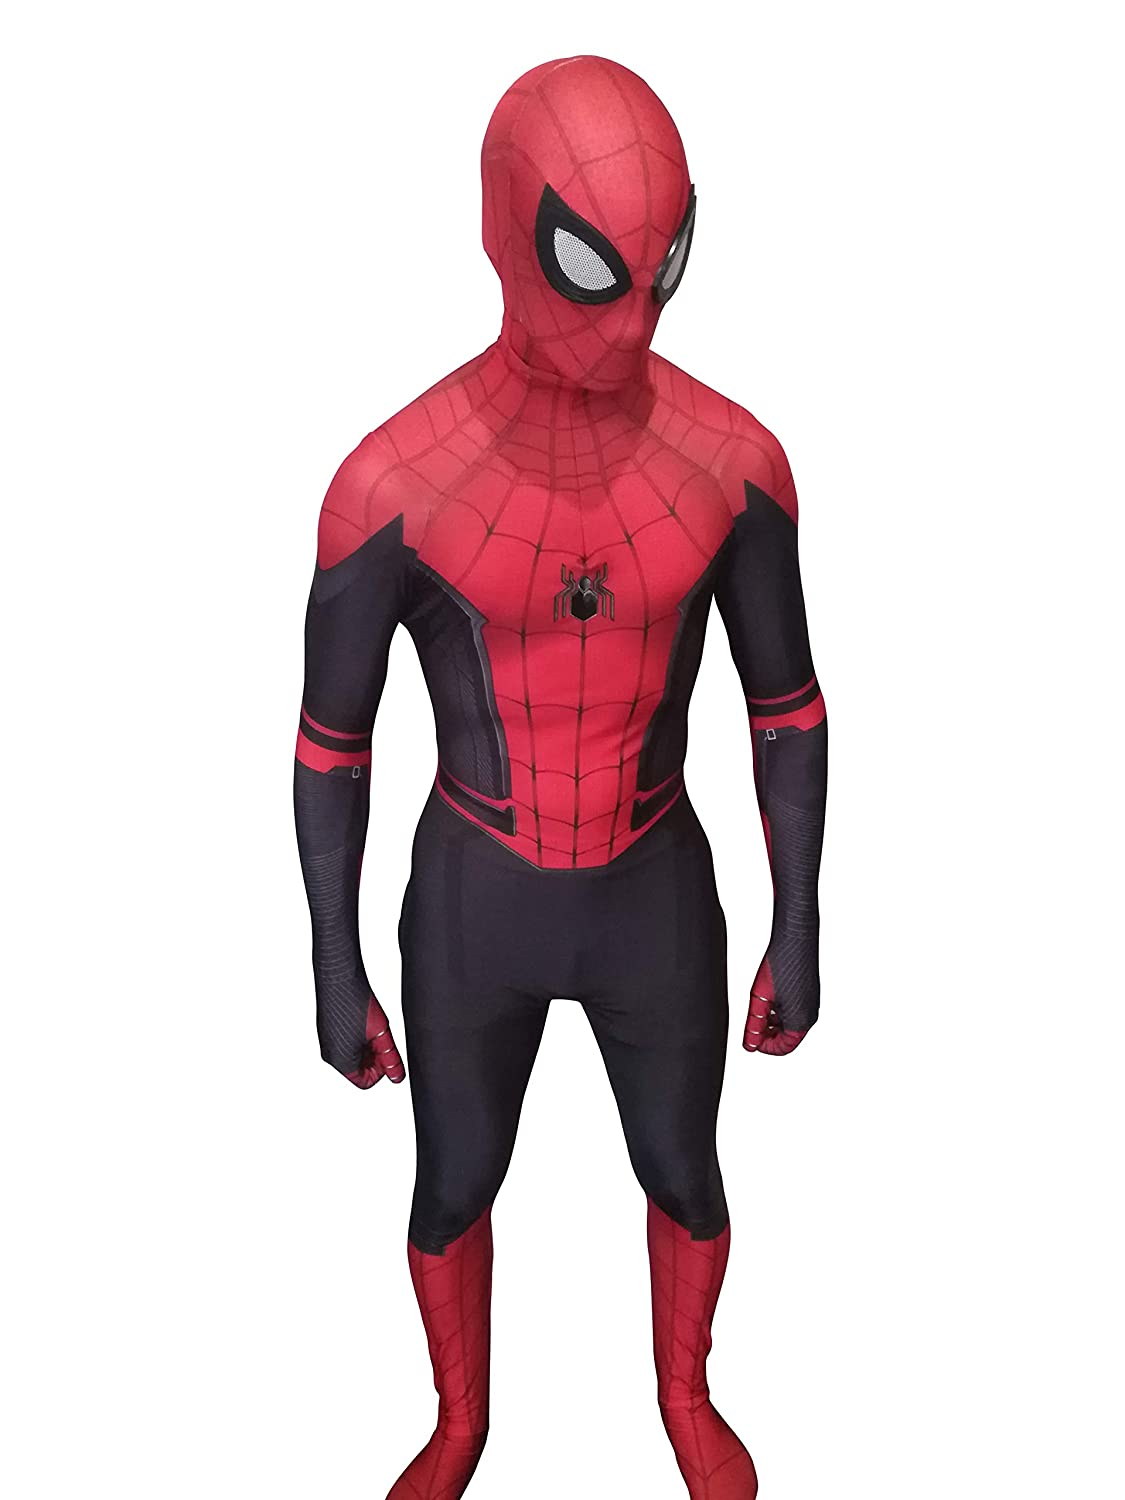 86acf9dac8d CosplayLife Halloween Cosplay Costume Homecoming Far from Home Iron Spider  Adult / Kids Lycra Spandex Zentai